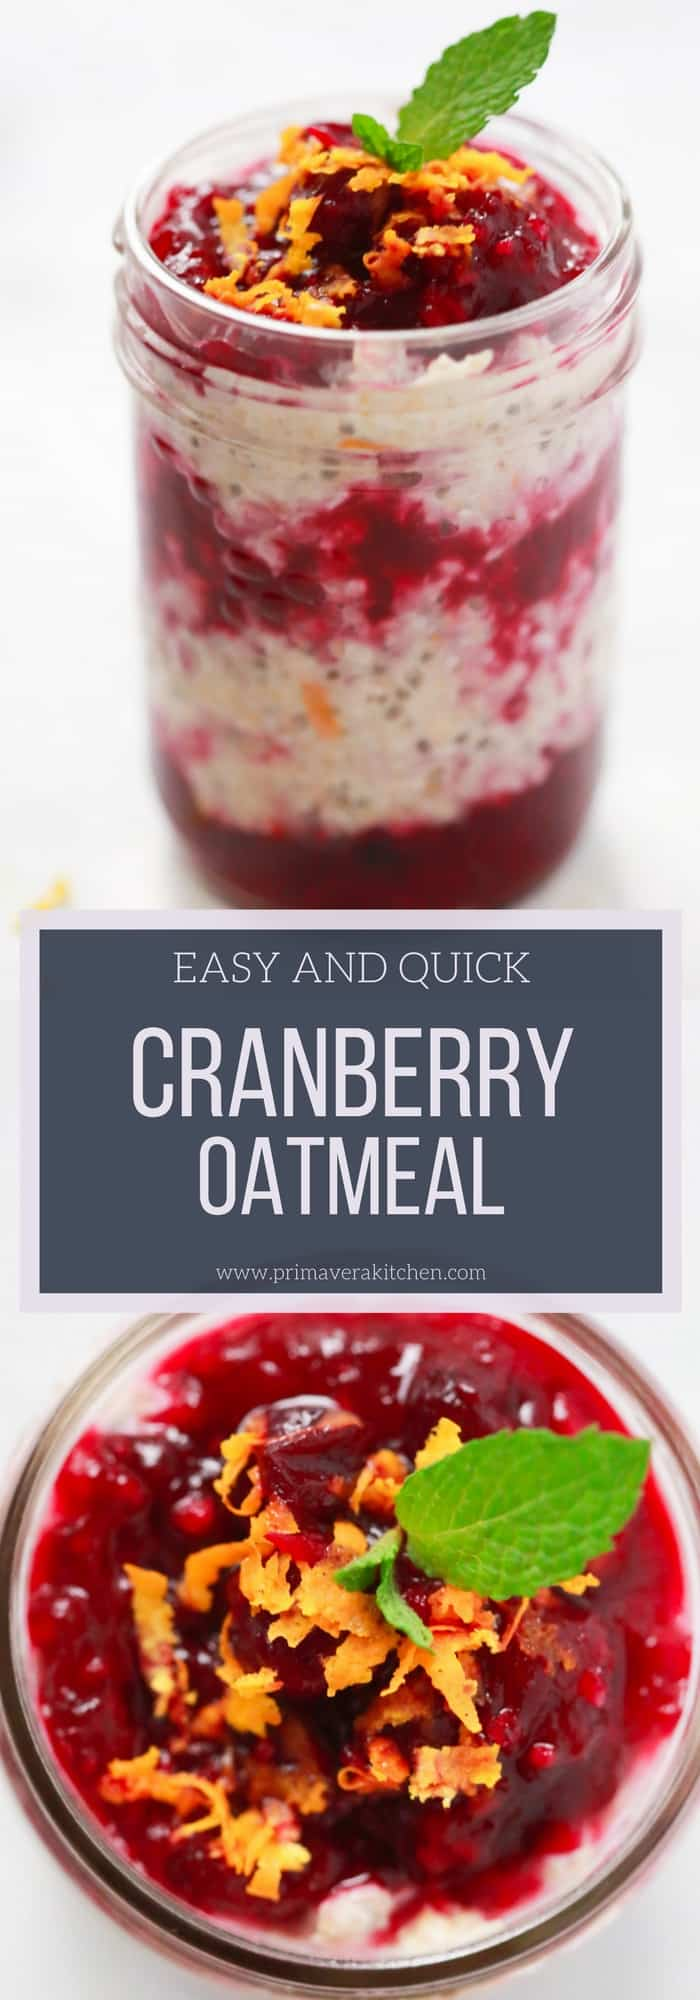 Nothing like delicious oatmeal for breakfast! This Easy Cranberry Oatmeal Recipe is so easy to prepare and it's very delicious.